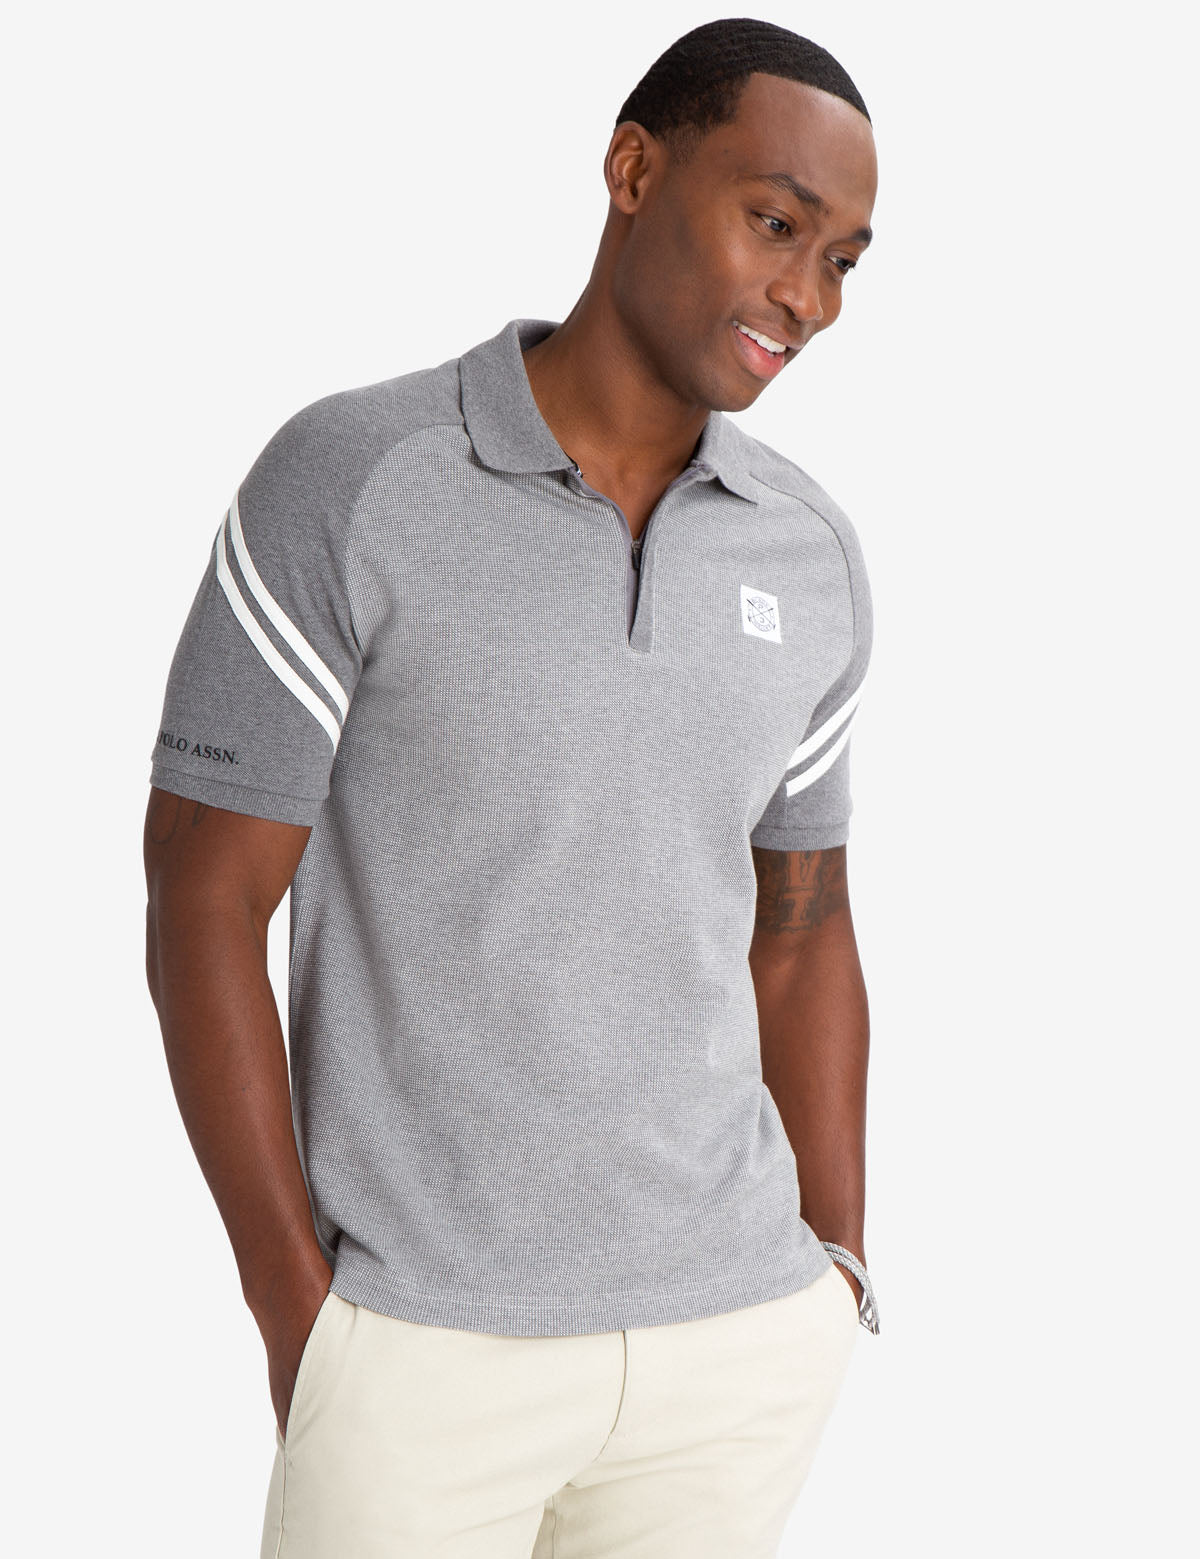 BLACK MALLET SLIM FIT JACQUARD ZIPPER POLO SHIRT